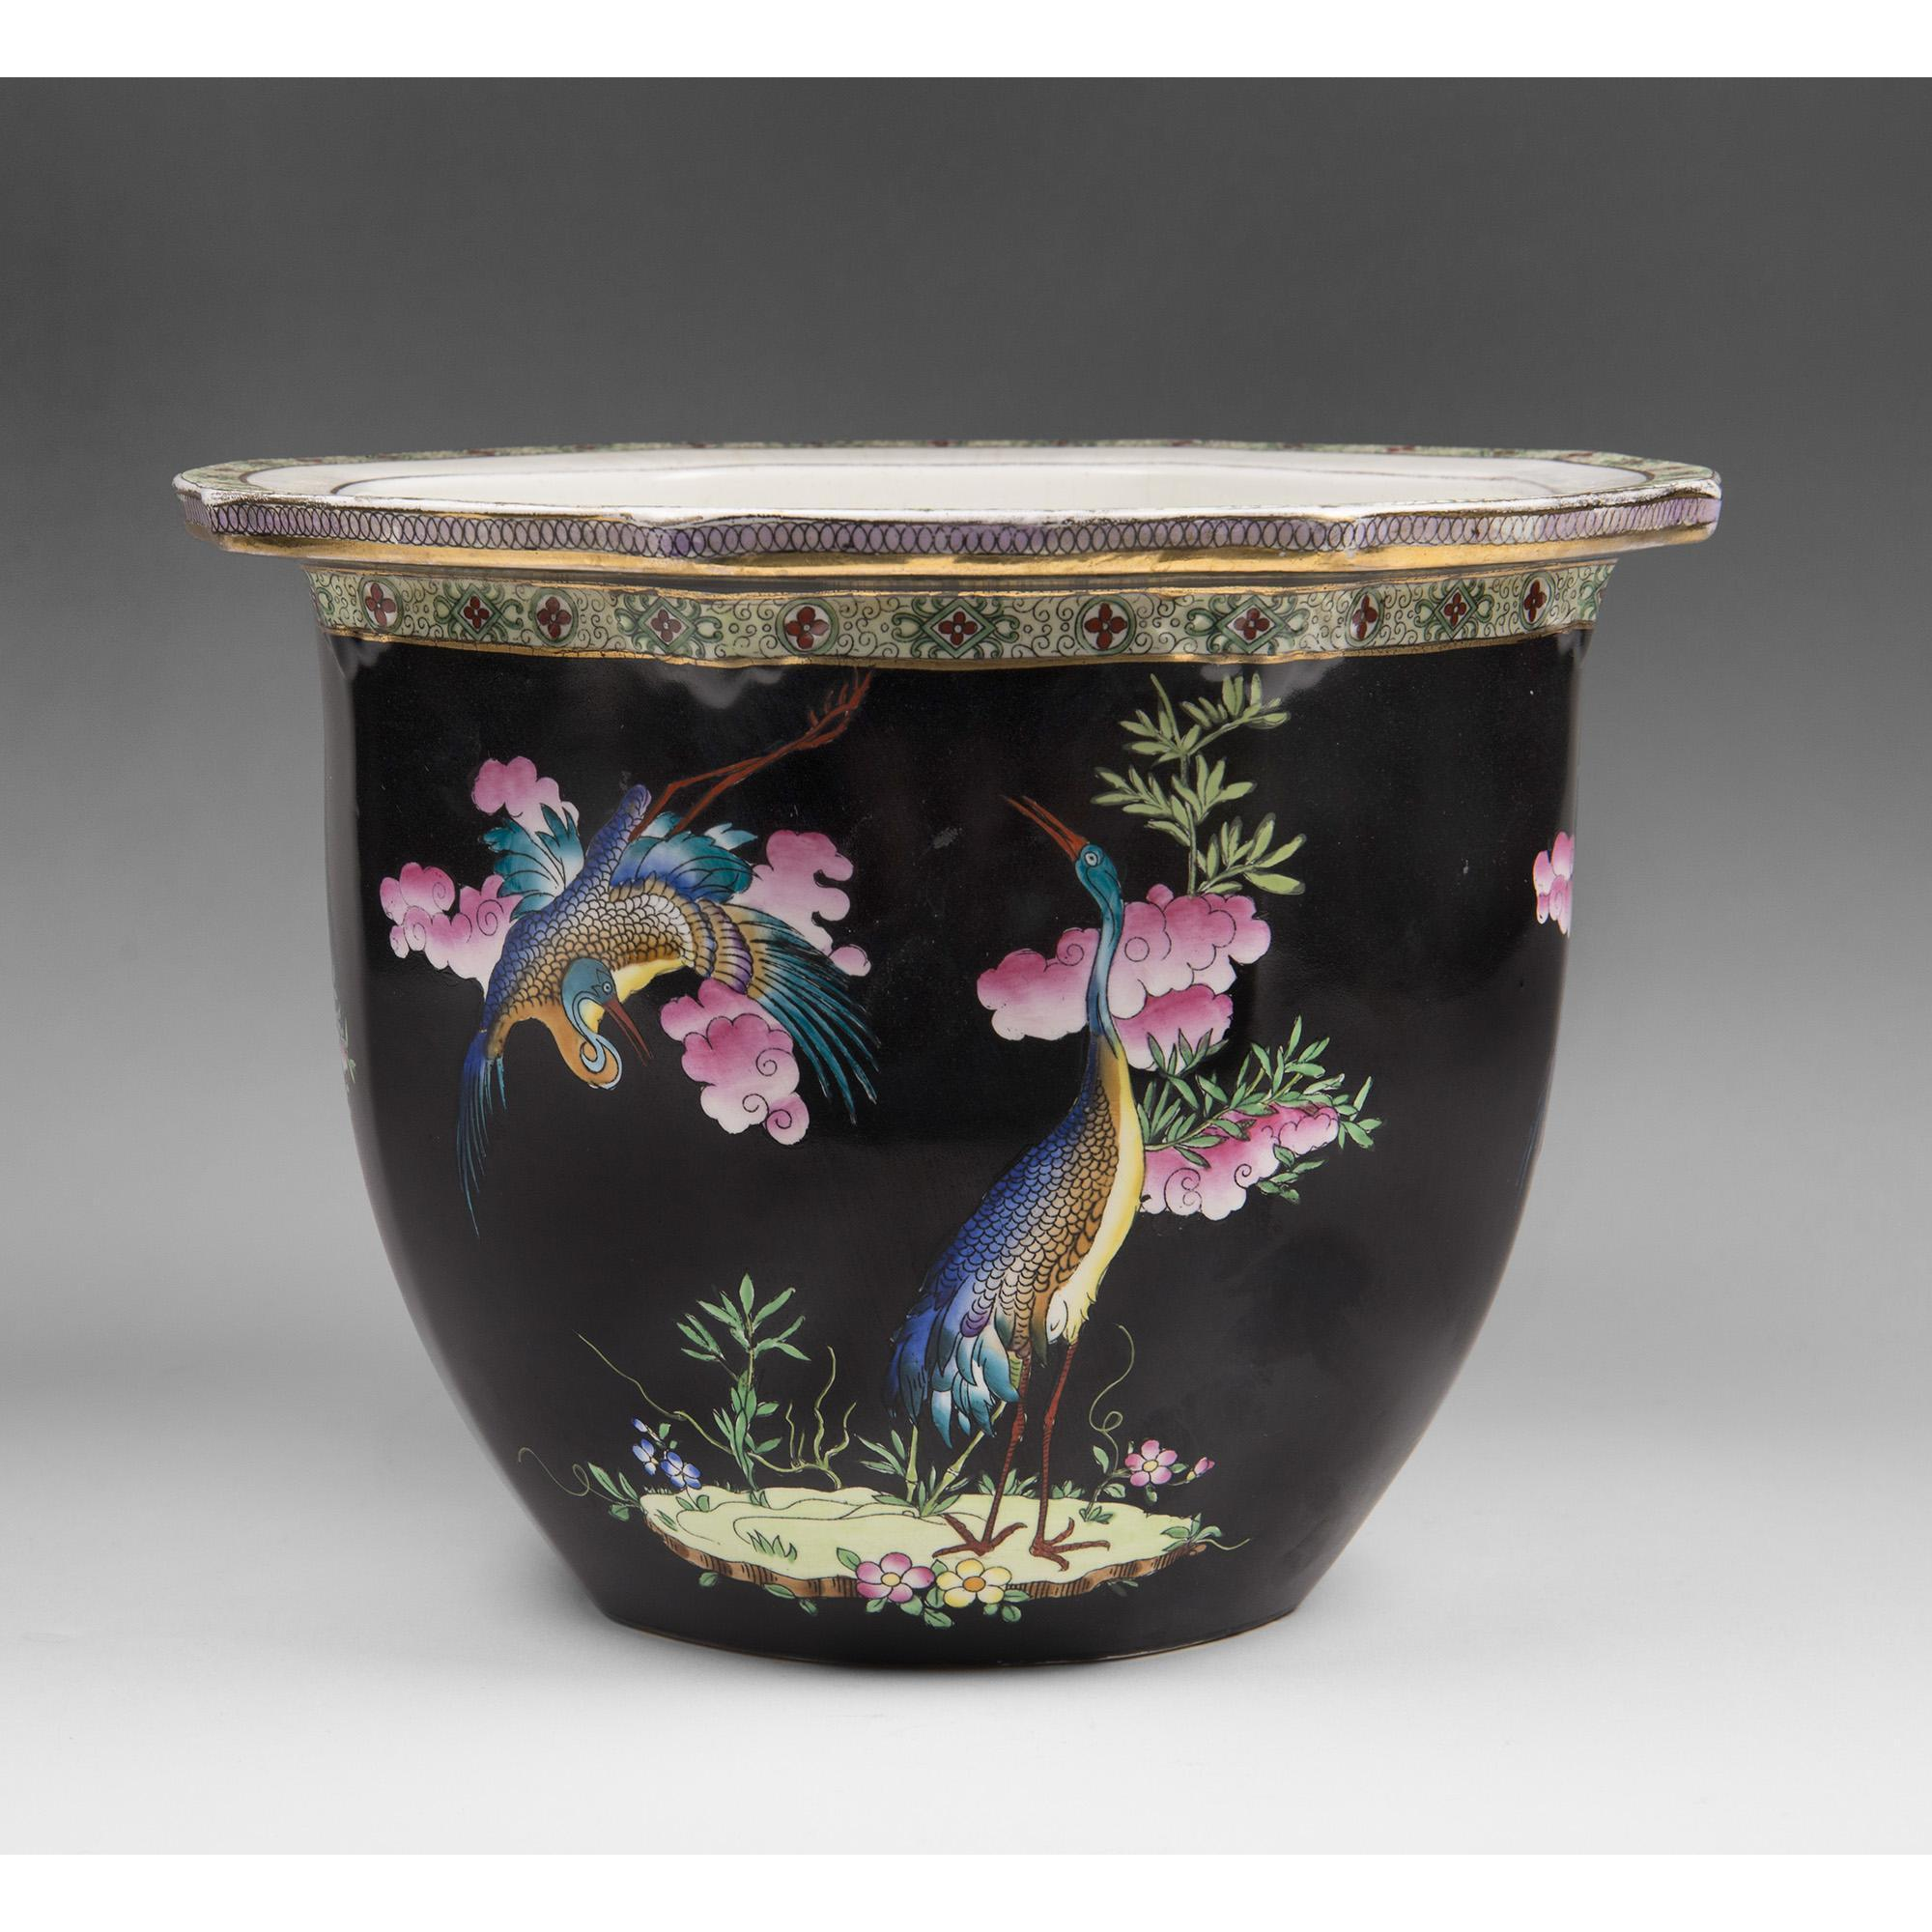 Early 20th C. English Mailing Cetem Ware Jardiniere